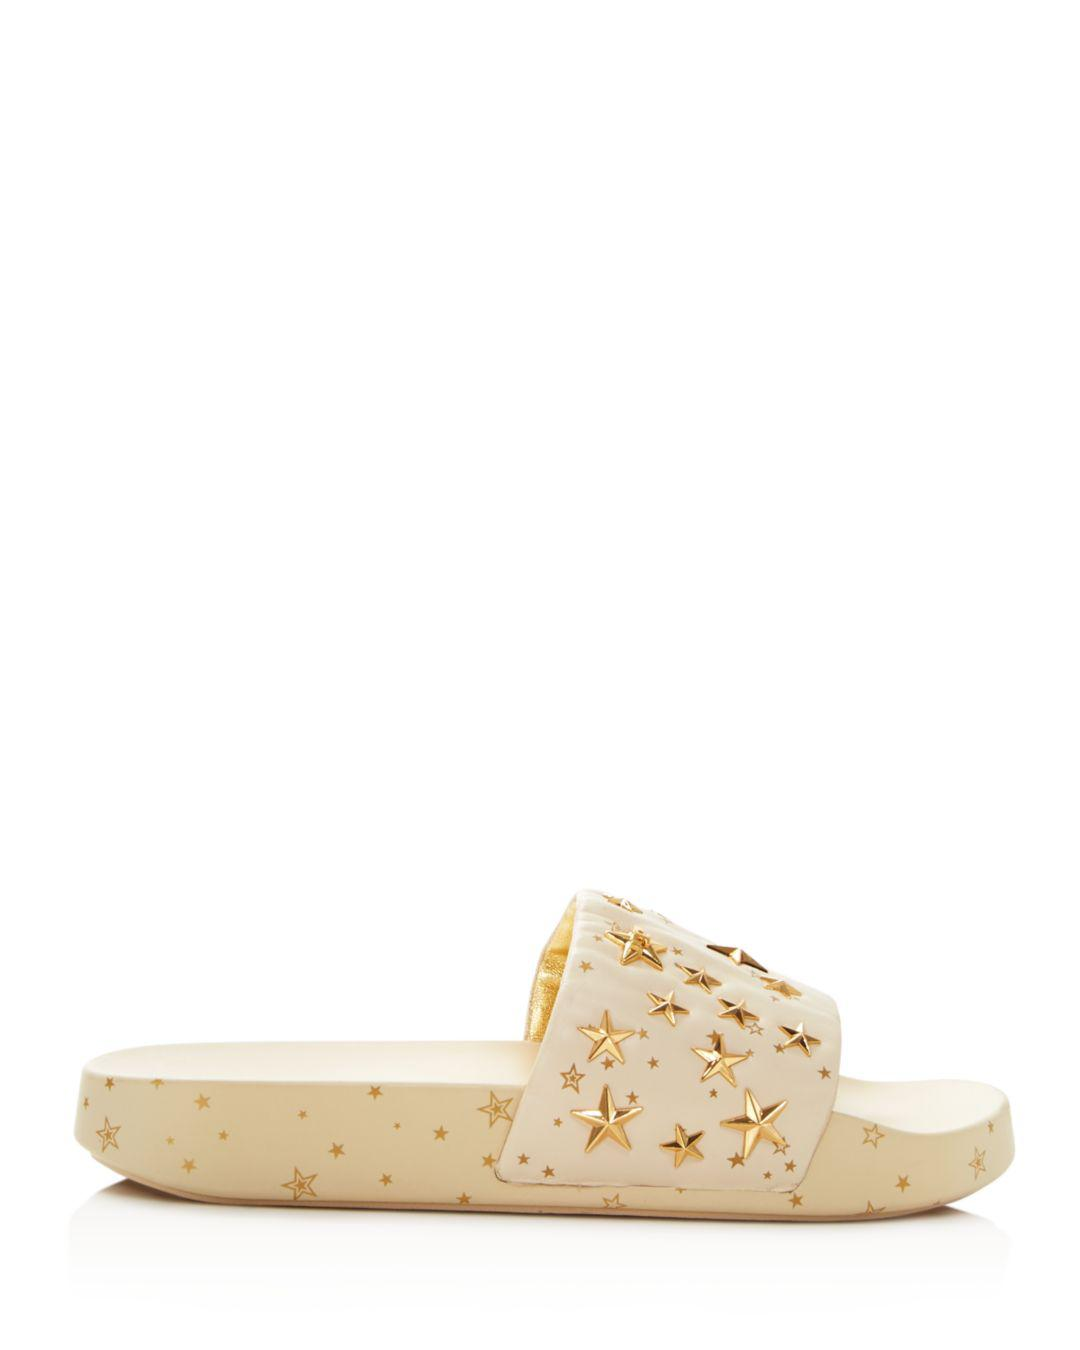 431c00e74b68 Lyst - Tory Burch Star Studded Leather Platform Slides in Natural